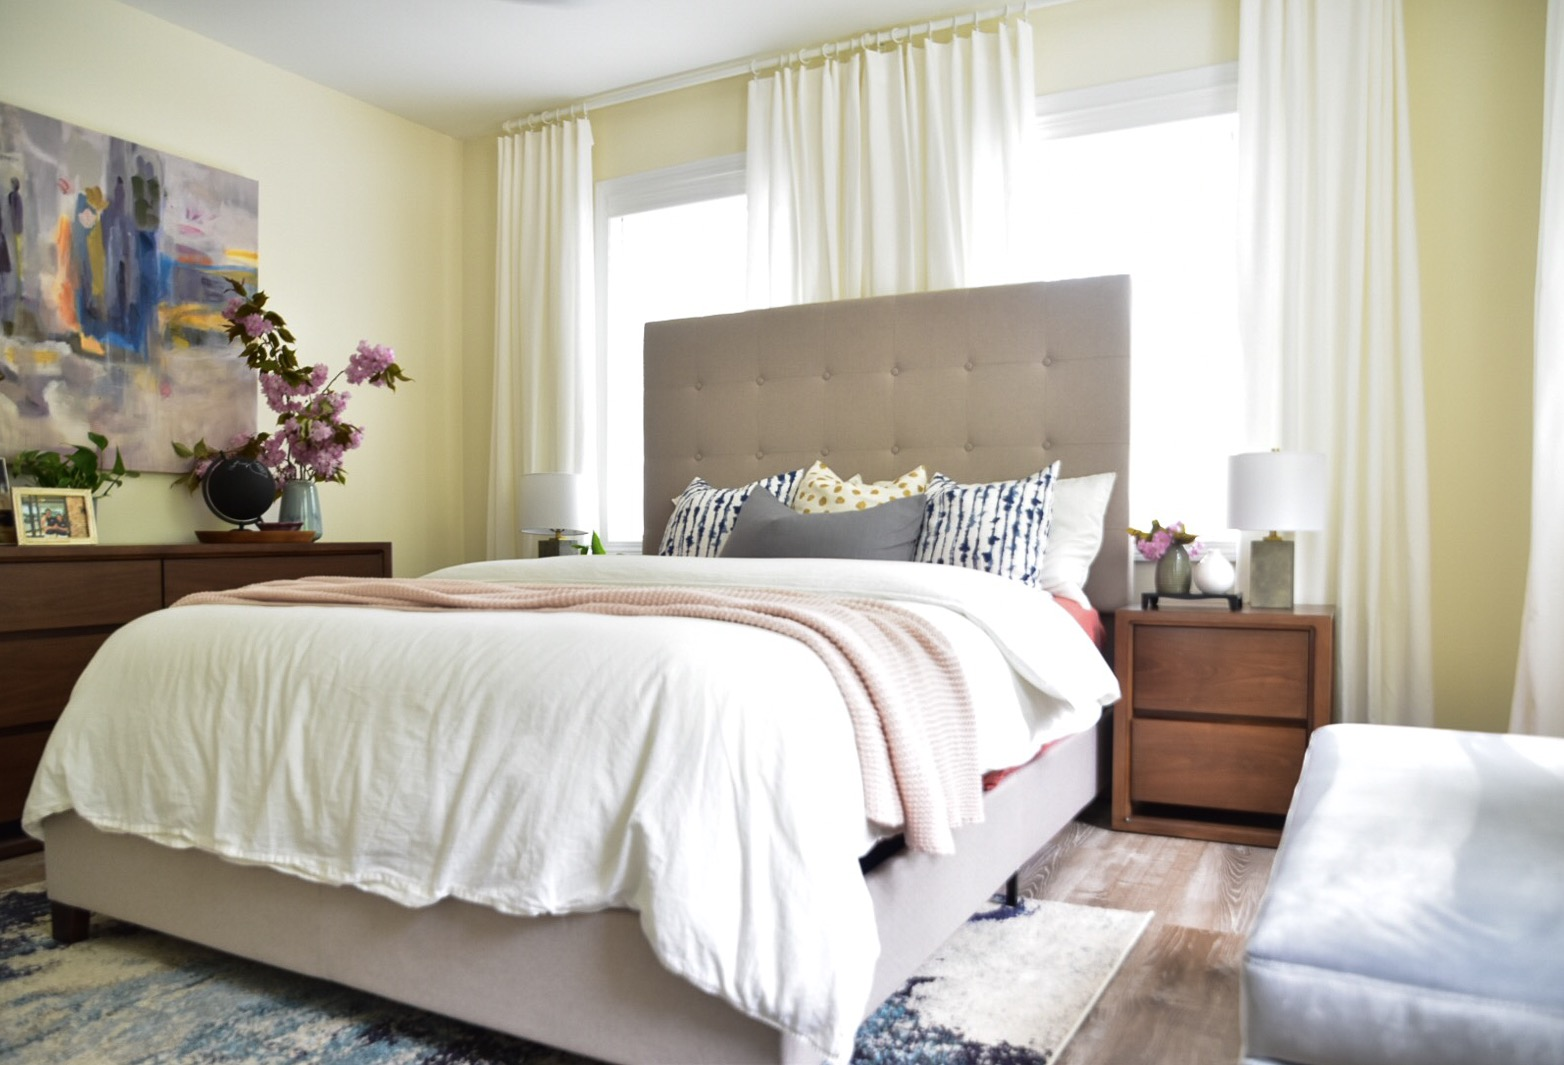 Bedroom furniture in Habitat for Humanity house